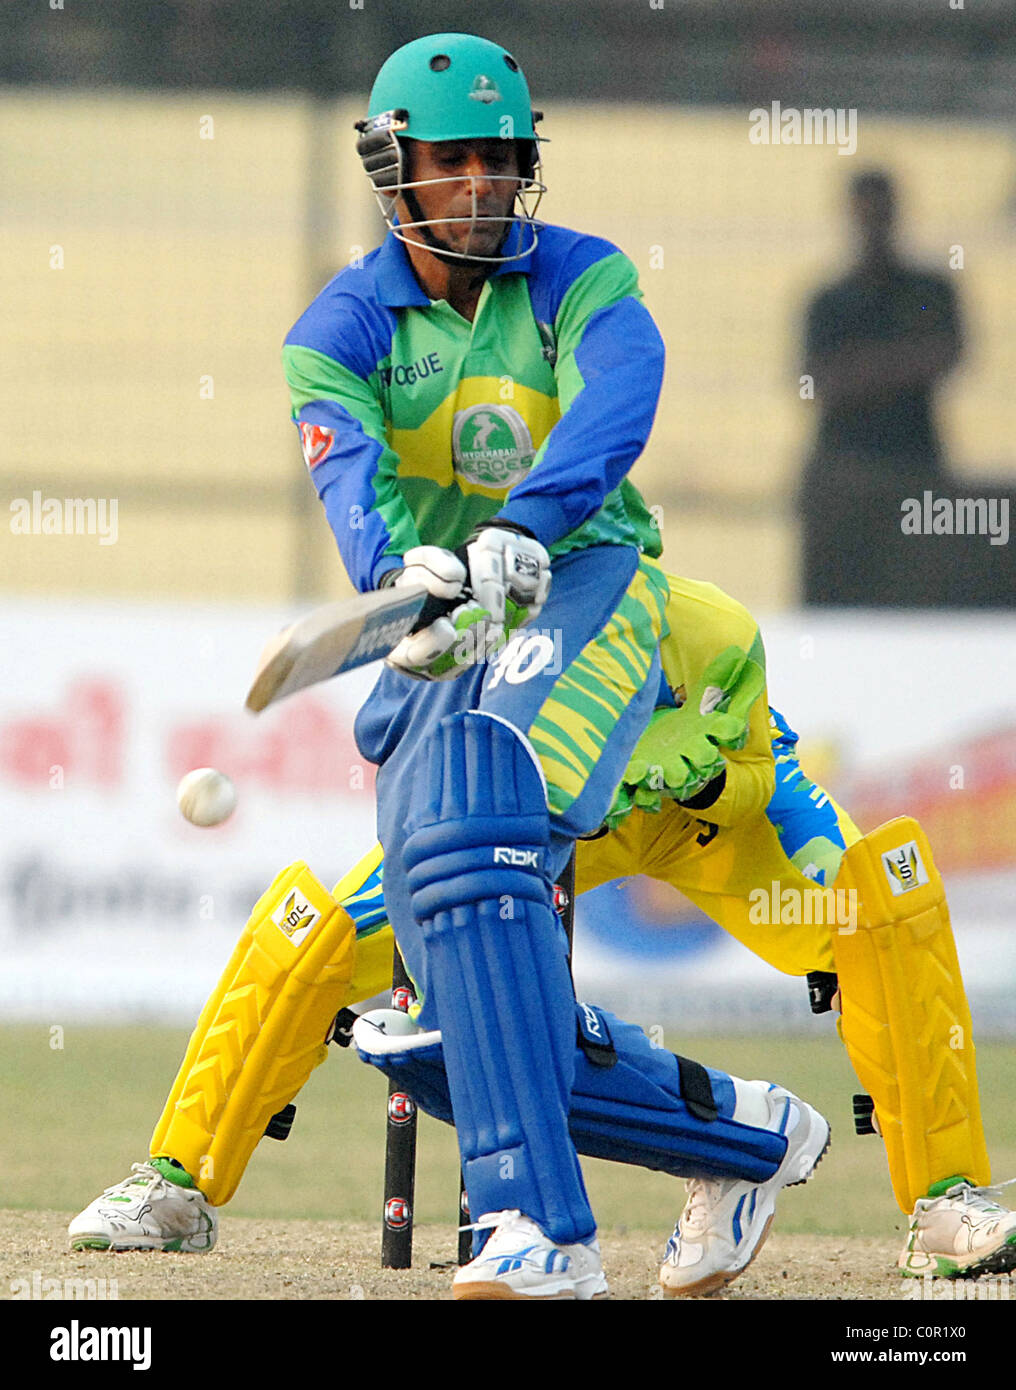 Abdul Razzak Of Hyderabad Heroes In Action Against Delhi Giants The During ICL T20 Tournament